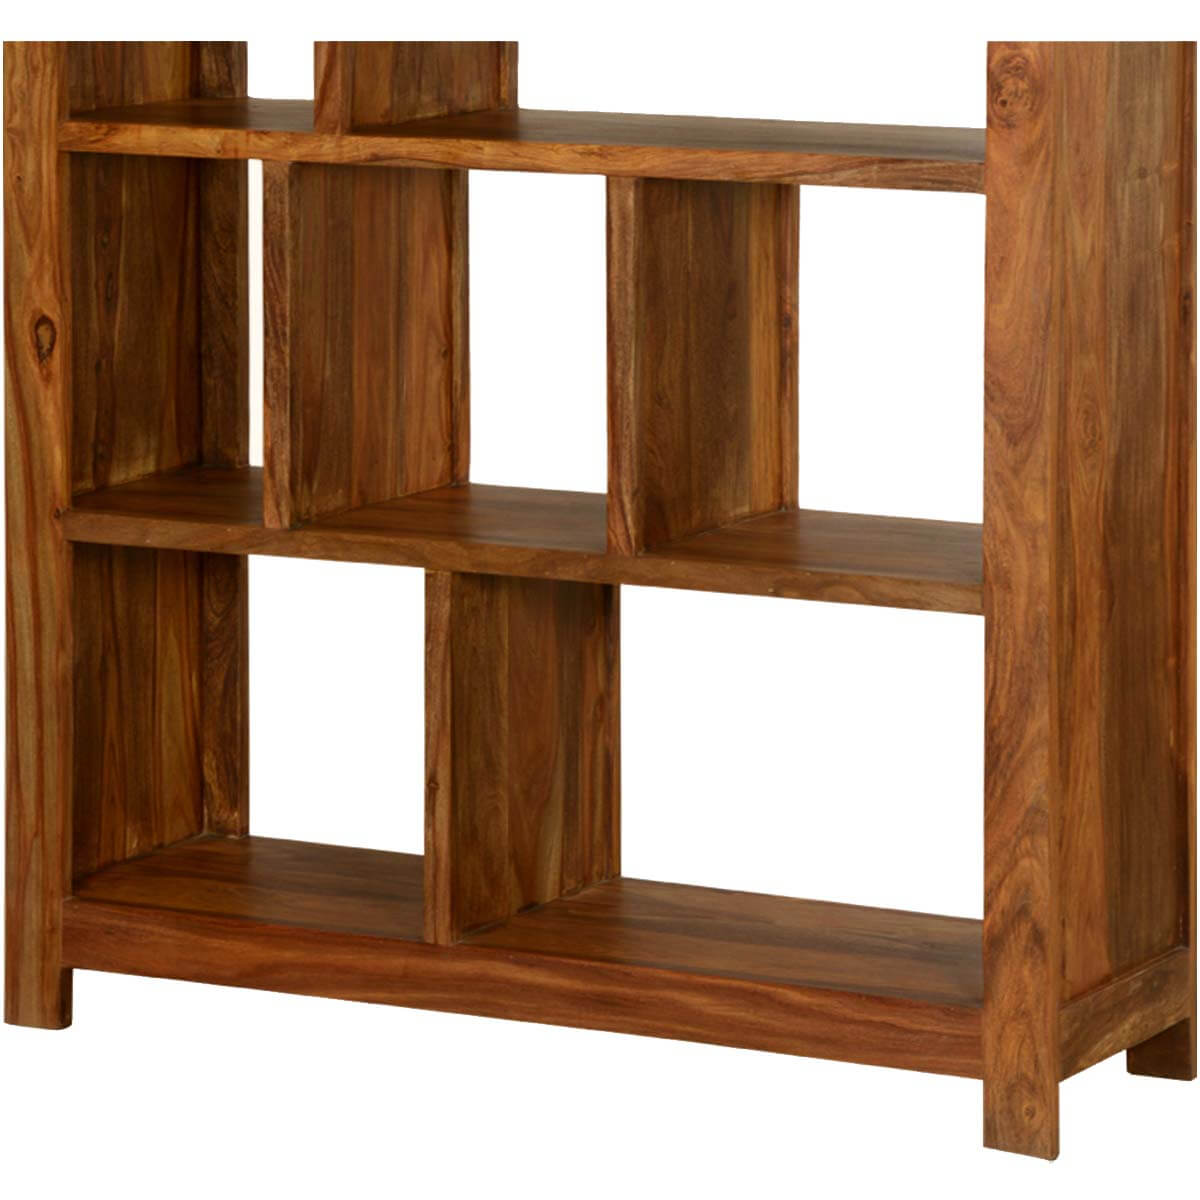 1 8m Country Oak Cross Leg Dining Table likewise Red Bedding Sets Queen in addition Country Western Bathroom Decor moreover P 7324 Simply Modern Solid Wood 11 Section Display Rack Cube Bookcase as well Panama Solid Rustic Oak Furniture Cross Leg Dining Table. on rustic cross bedroom sets